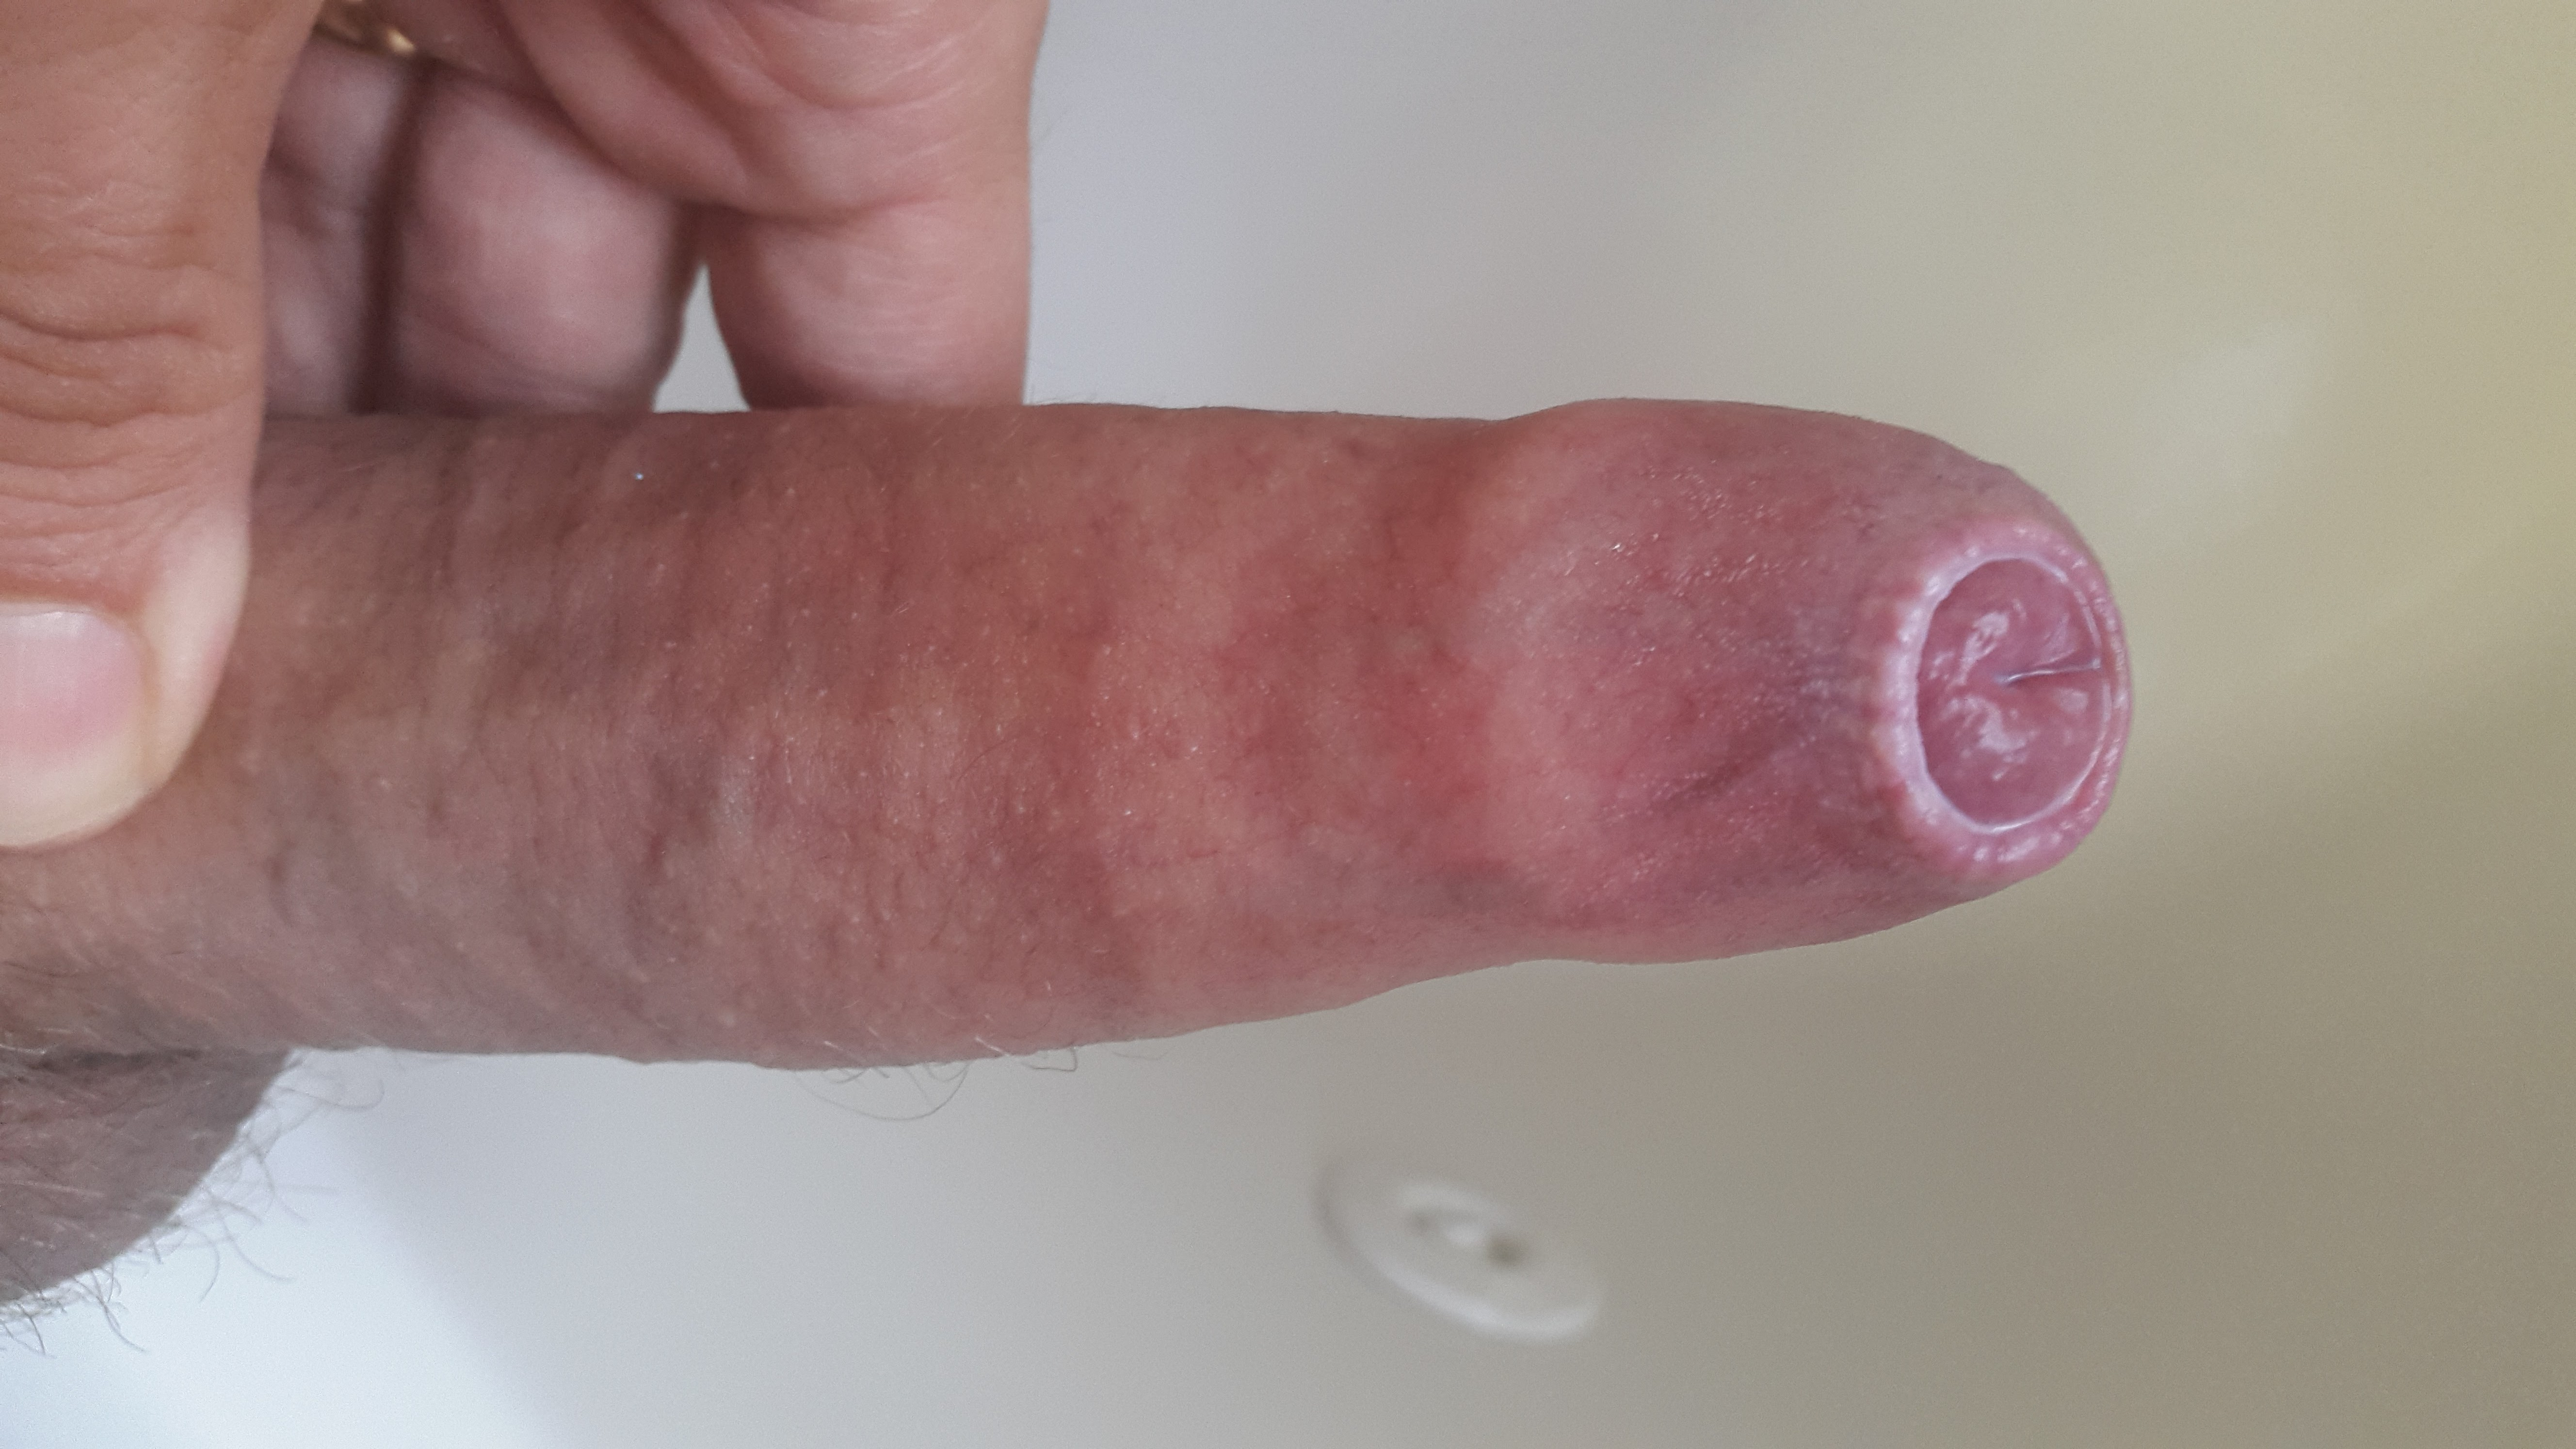 Penis with phimosis